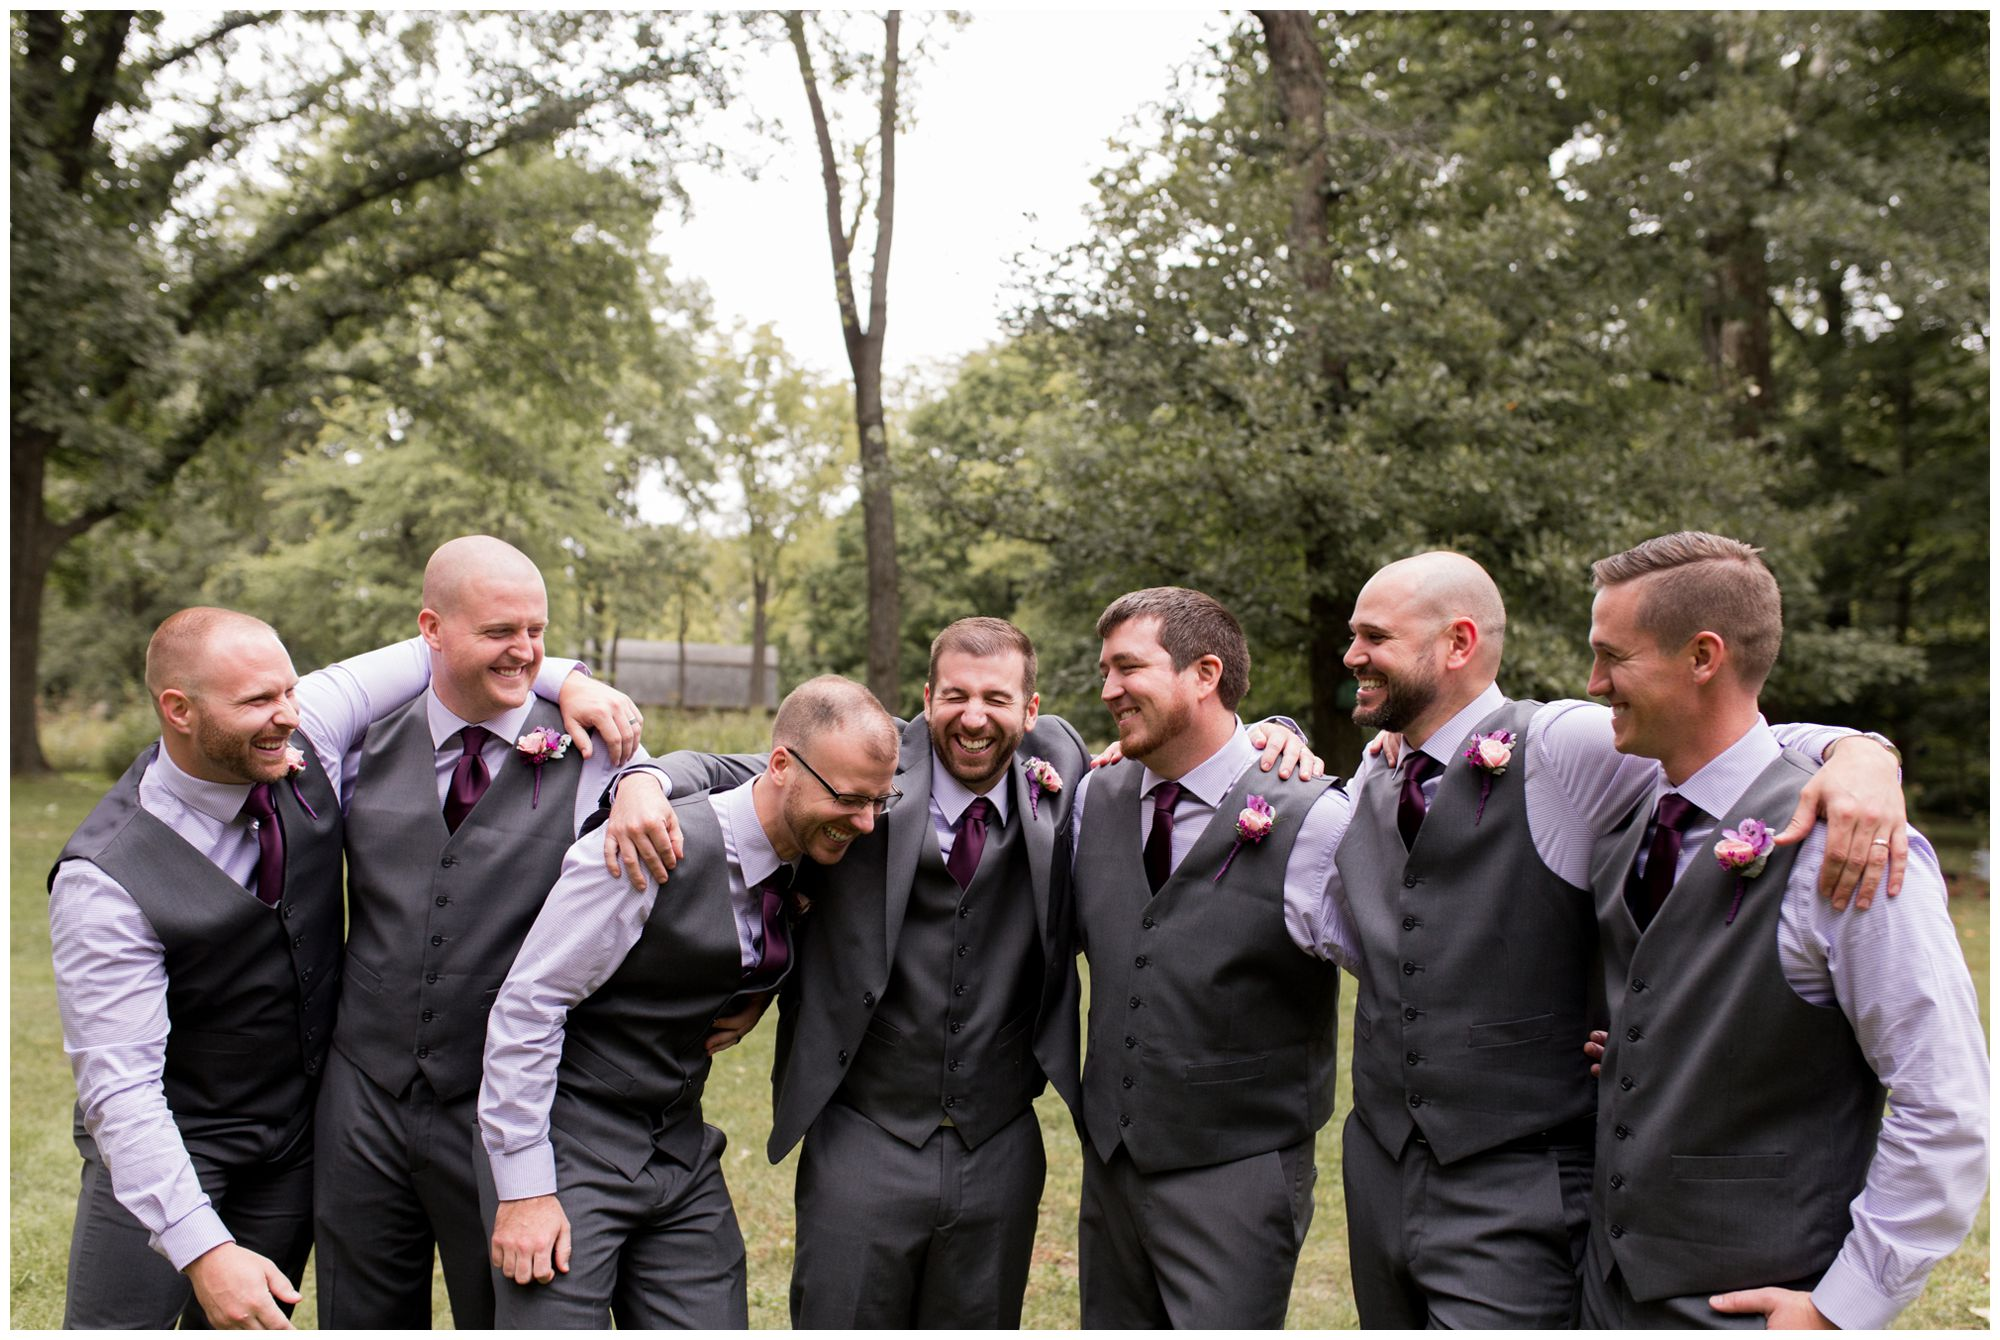 wedding party photos during Wabash wedding photography at Charley Creek Gardens